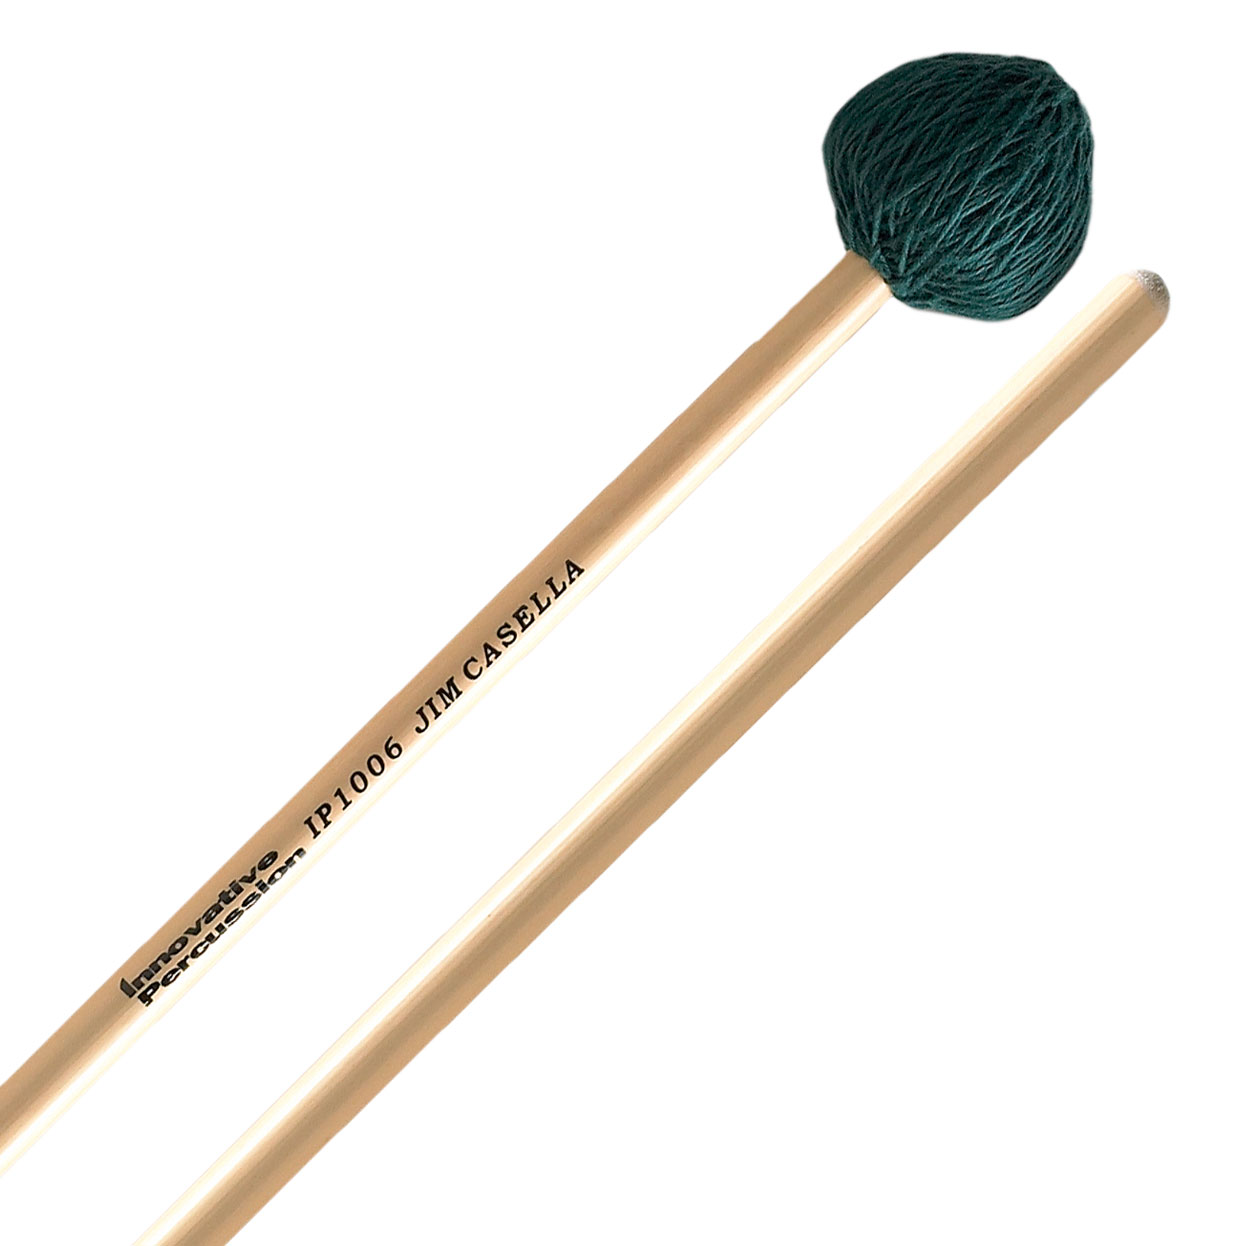 Innovative Percussion IP1006 Jim Casella Hard Vibraphone Mallets with Rattan Handles